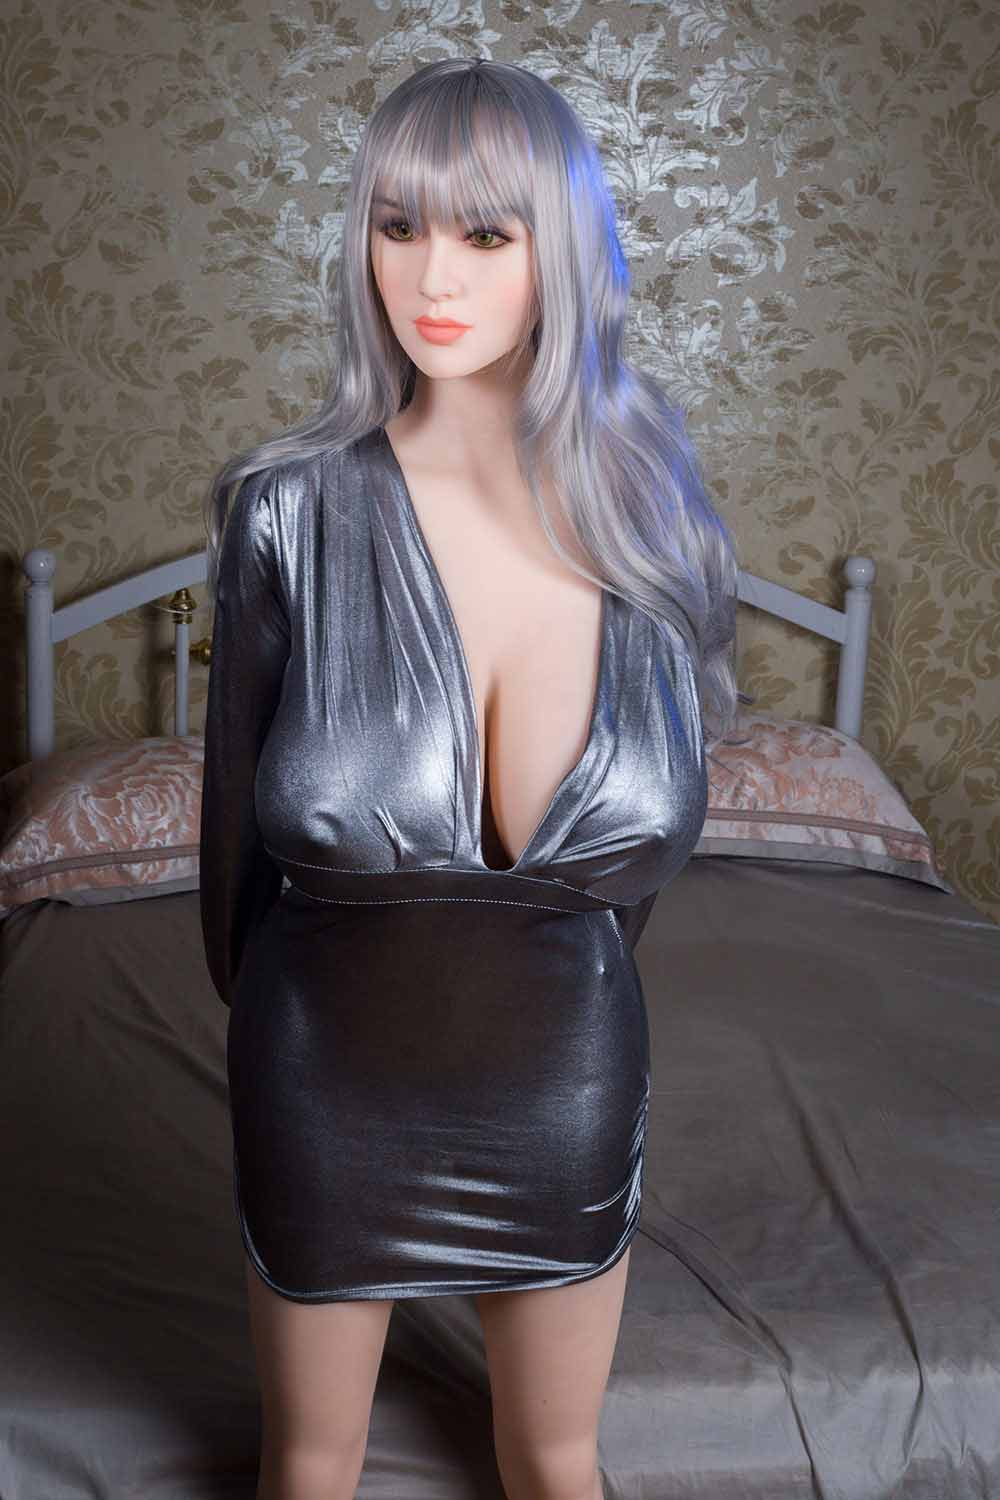 Big breasted sex doll standing by the bed